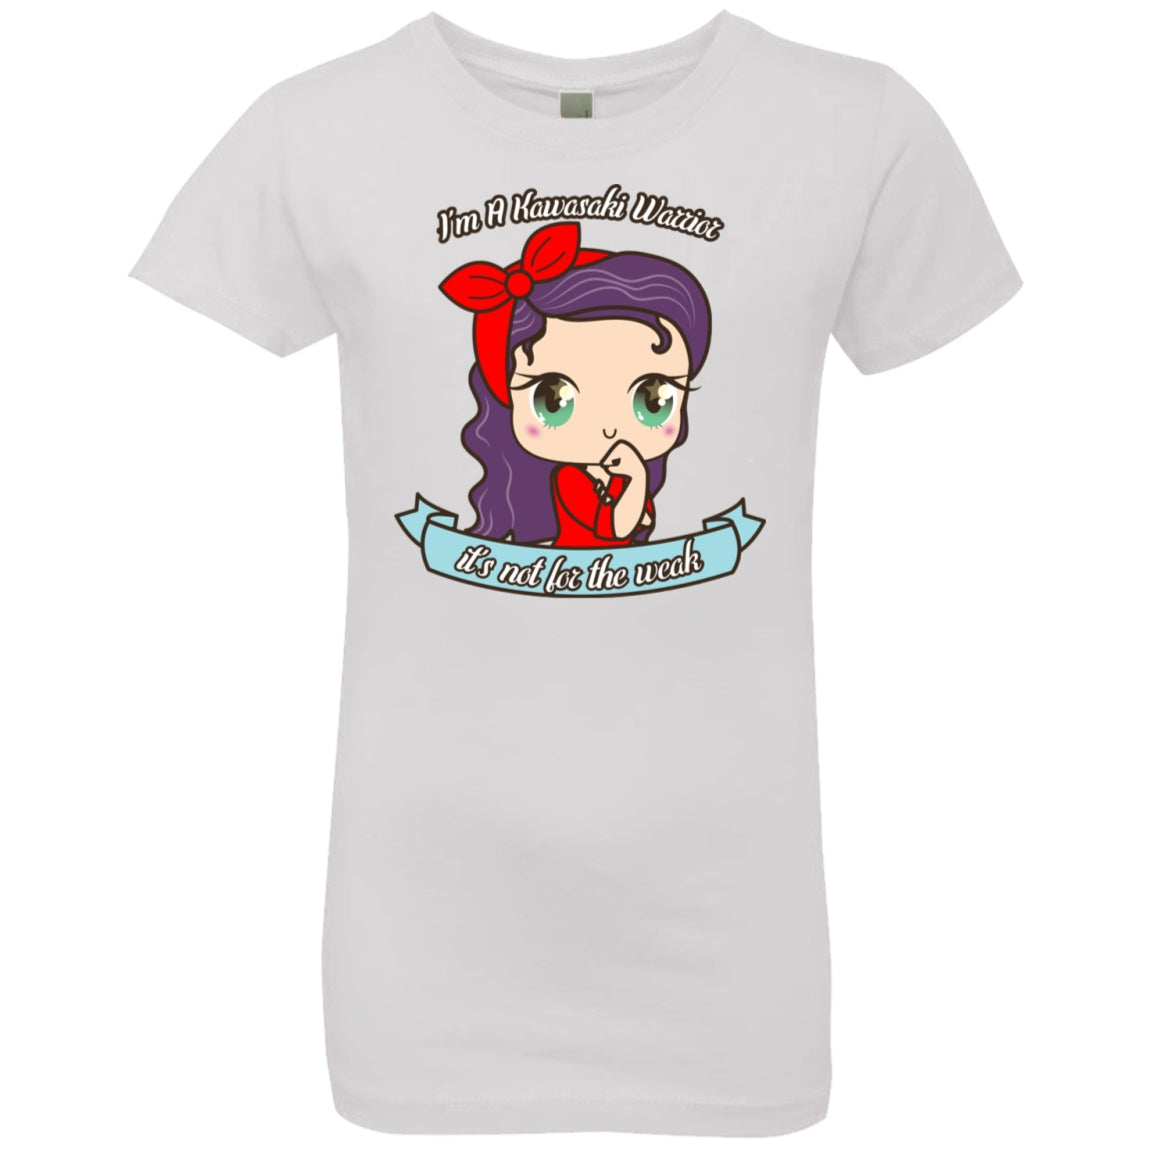 Cute Kawasaki Warrior Girls' Princess T-Shirt